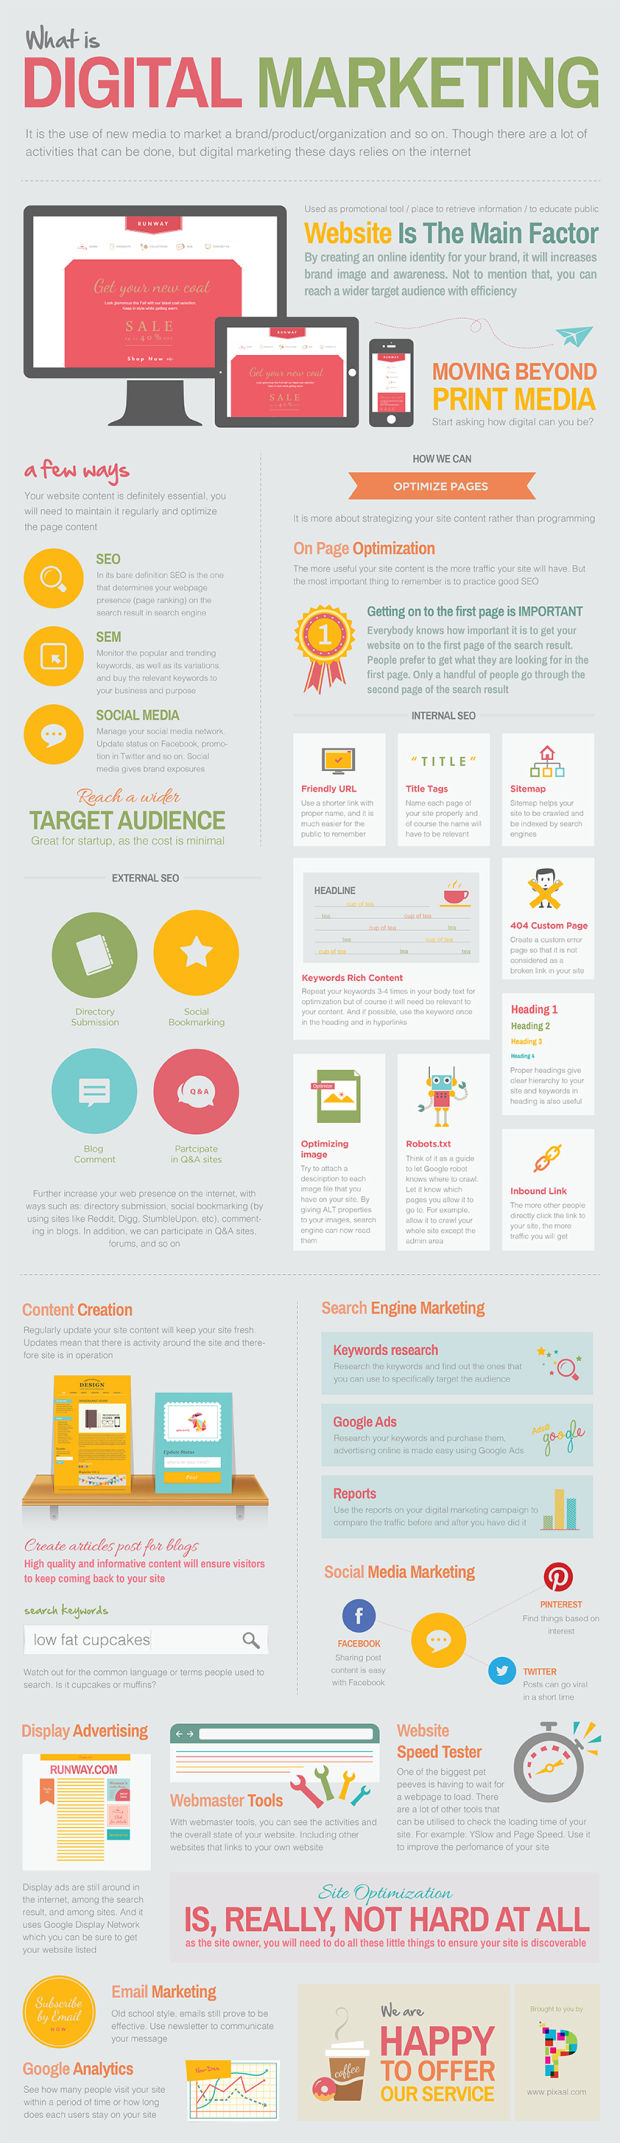 Digital Marketing Infographic.jpg